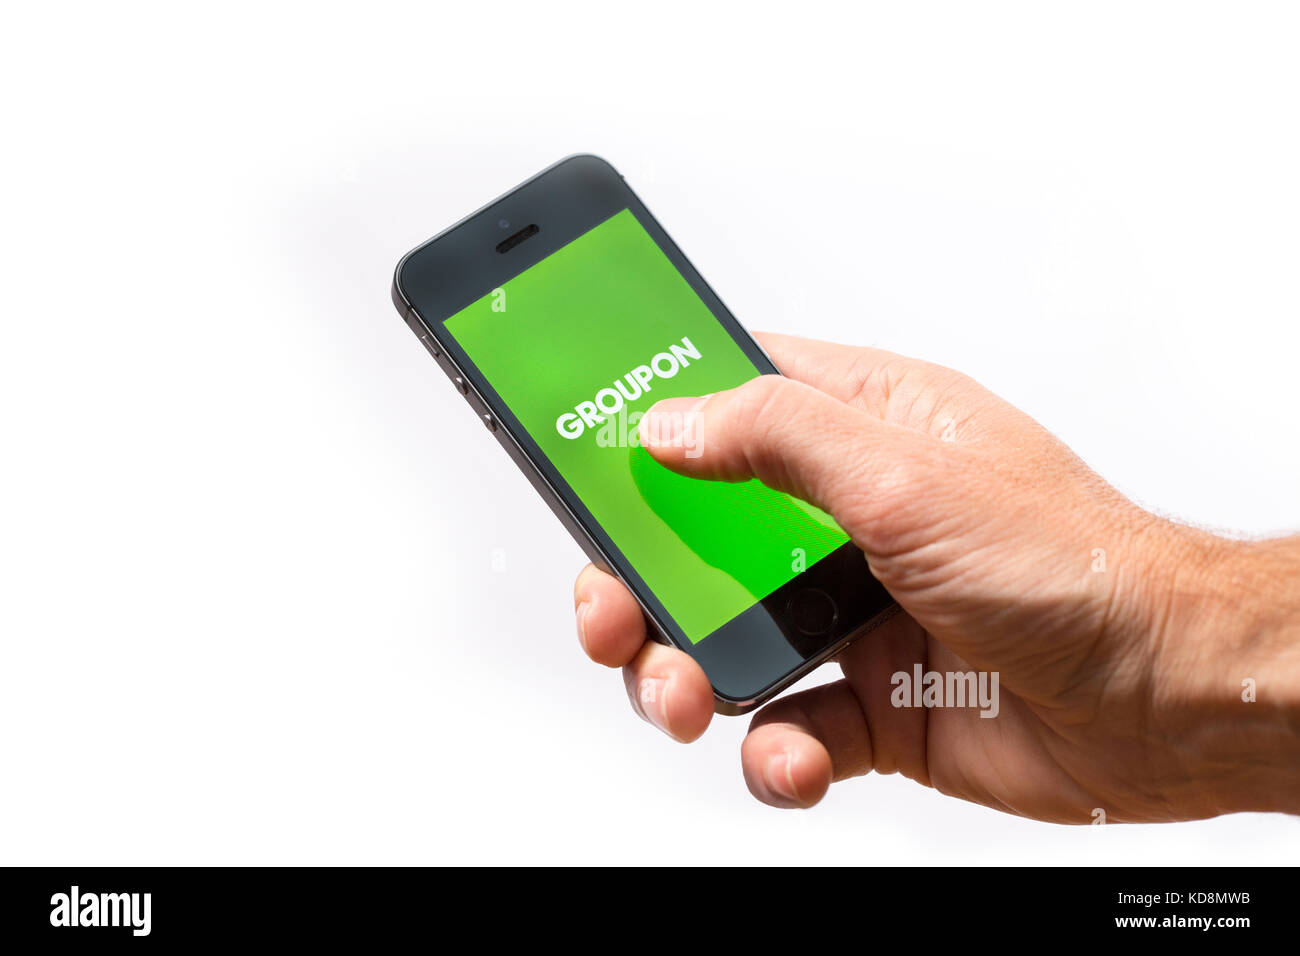 Groupon logo stock photos groupon logo stock images alamy a man using the groupon app on a mobile phone stock image buycottarizona Image collections